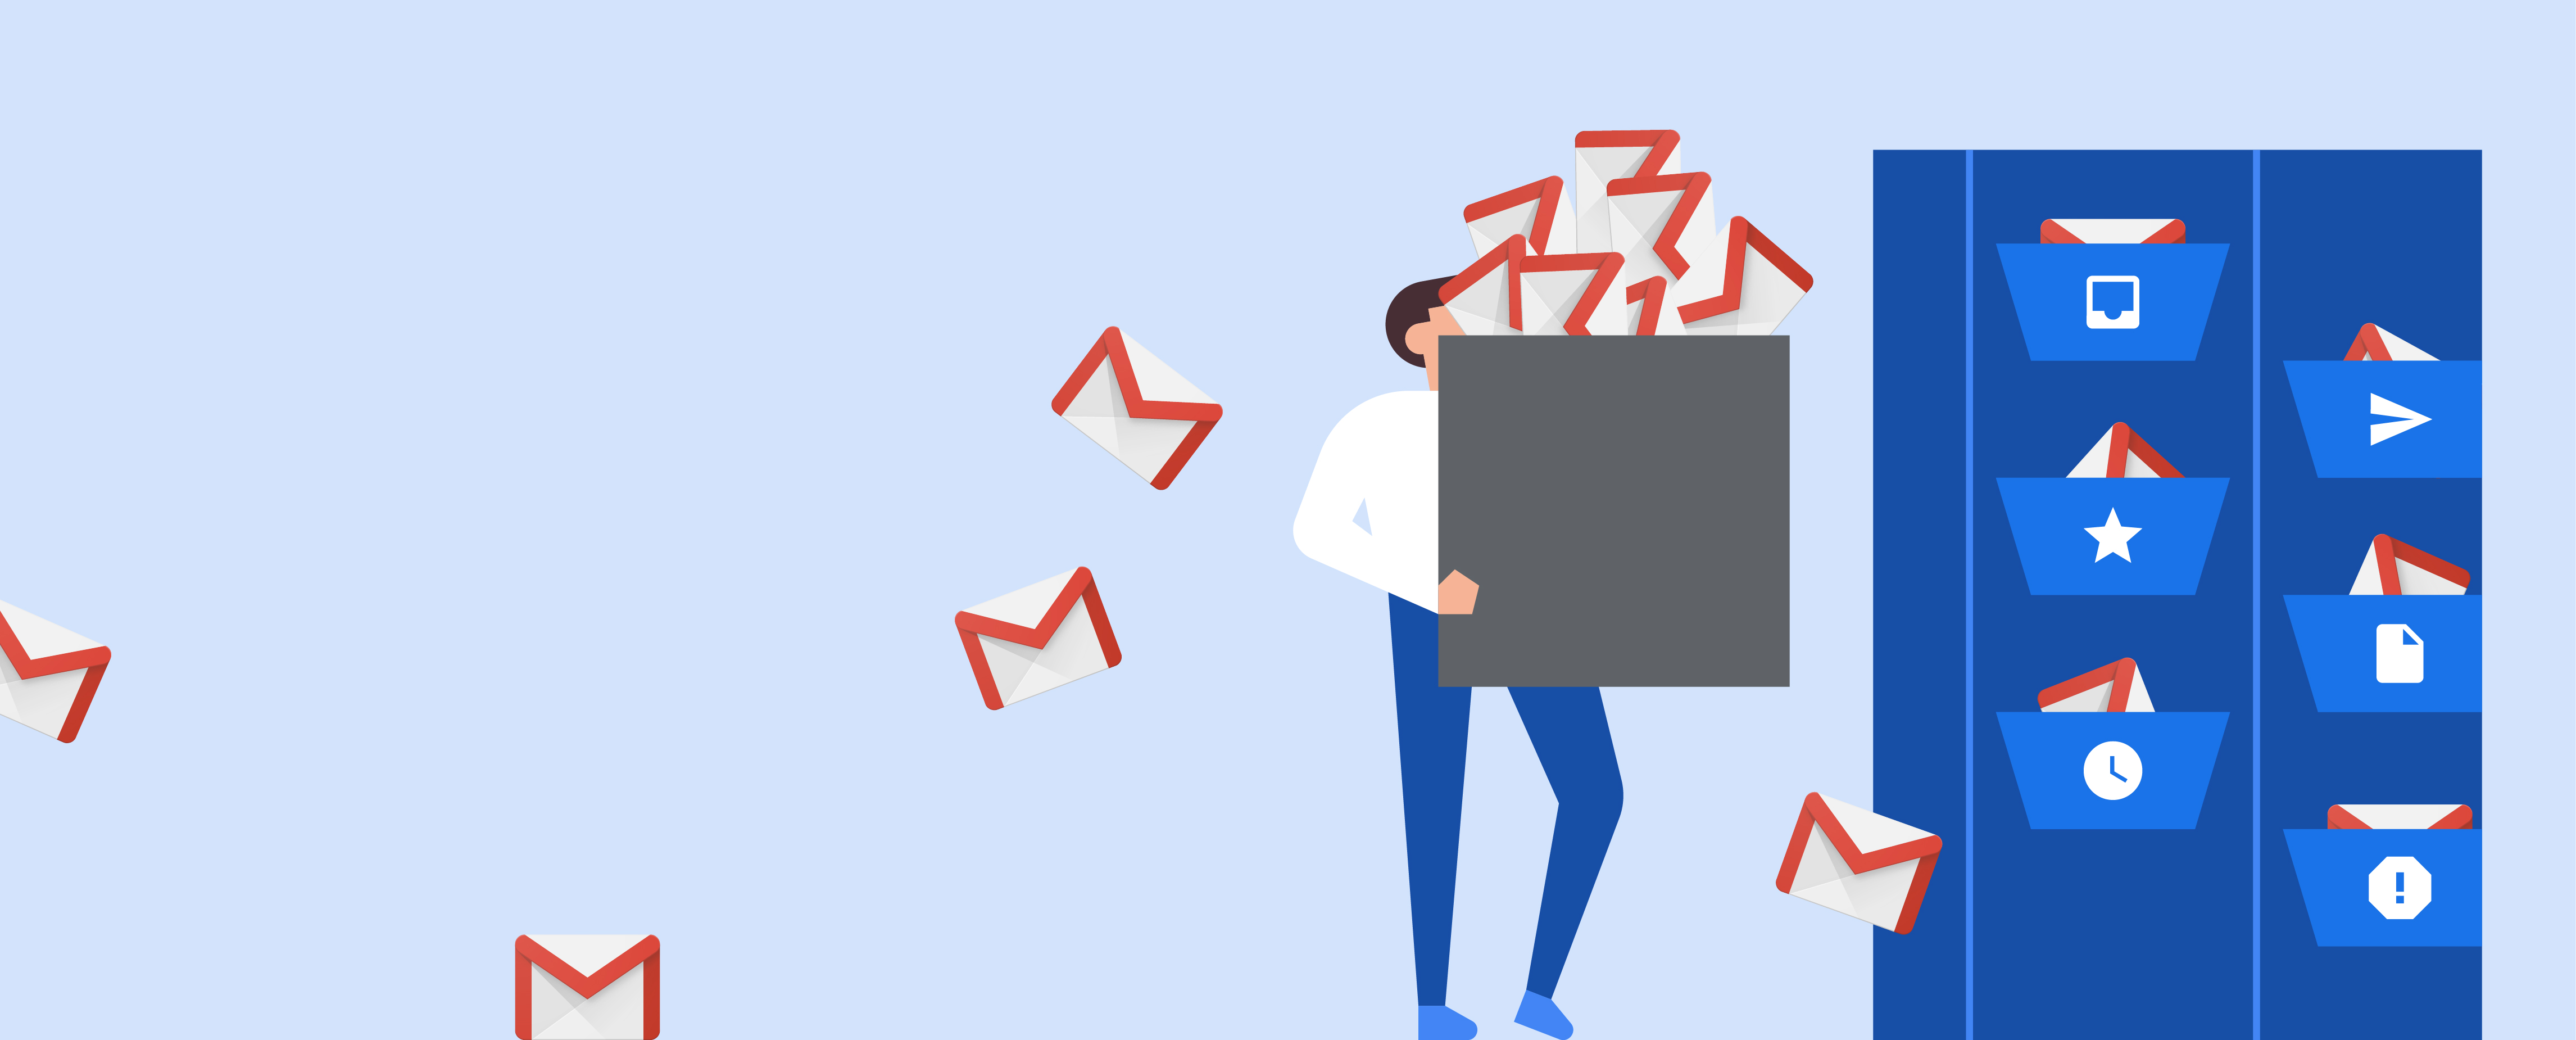 The Five Minute Master - Email Overload